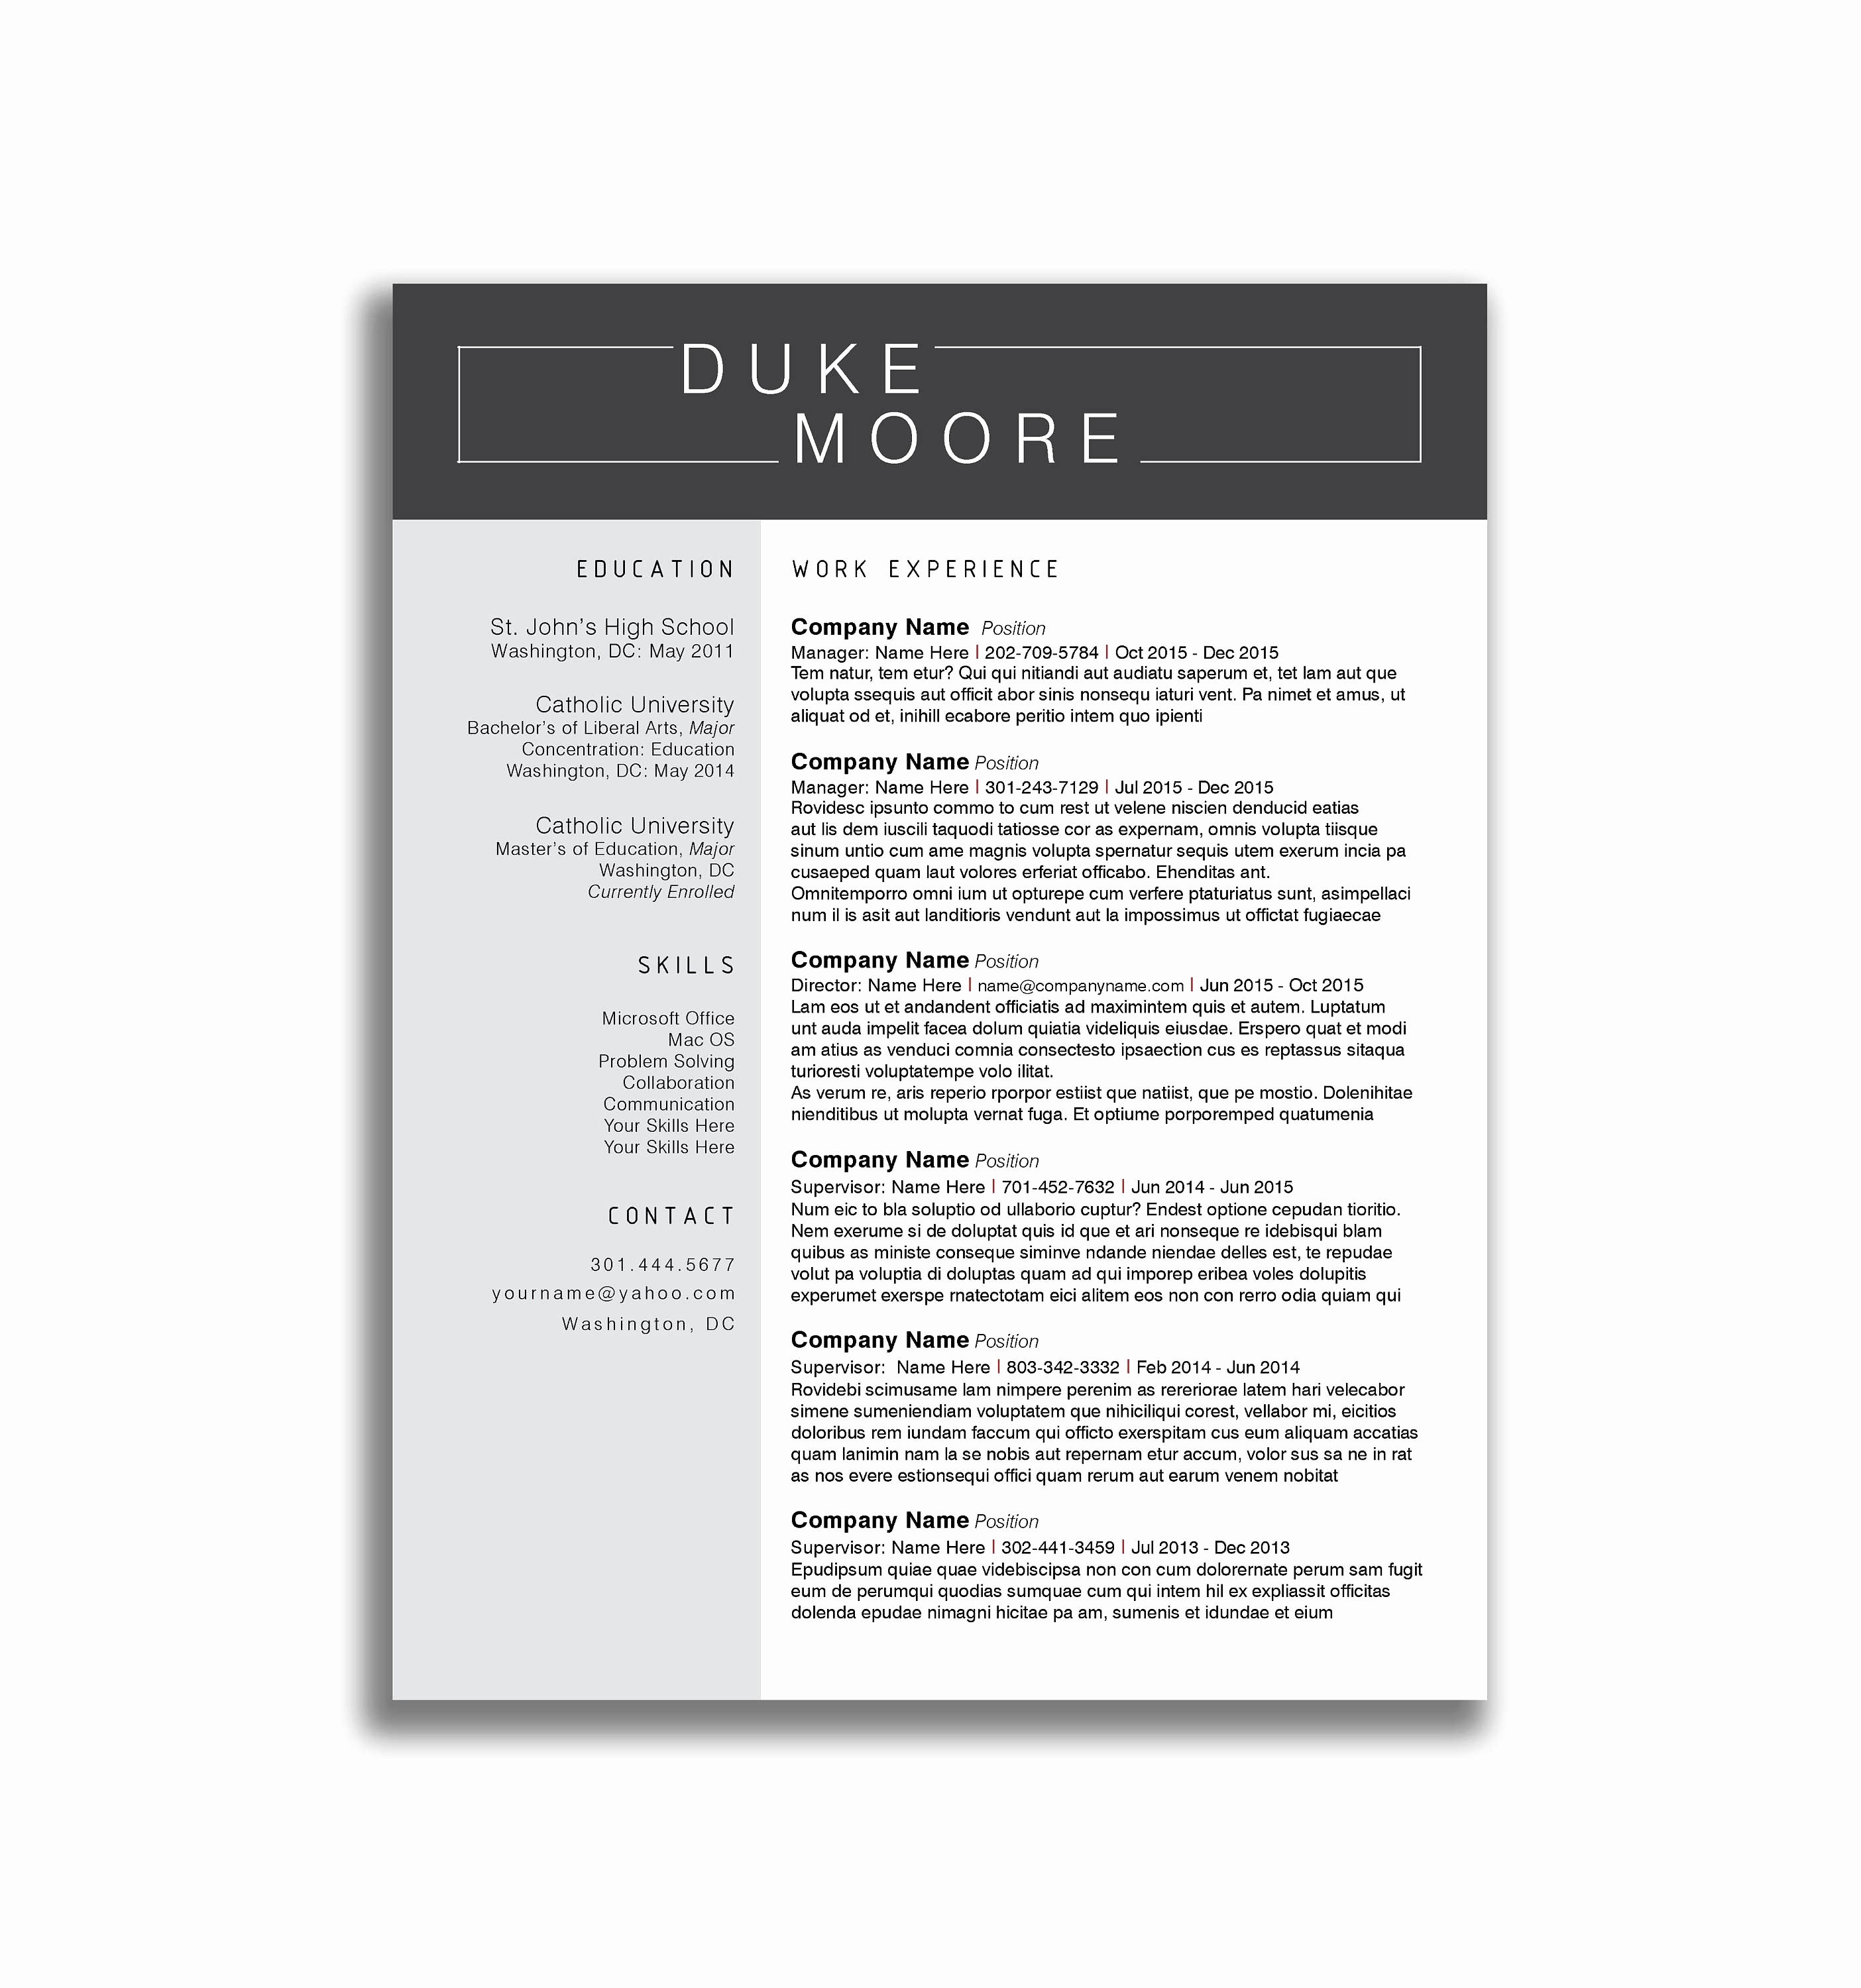 Resume for Stay at Home Mom Template - Insurance Certificate Template New Stay at Home Mom Cover Letter New